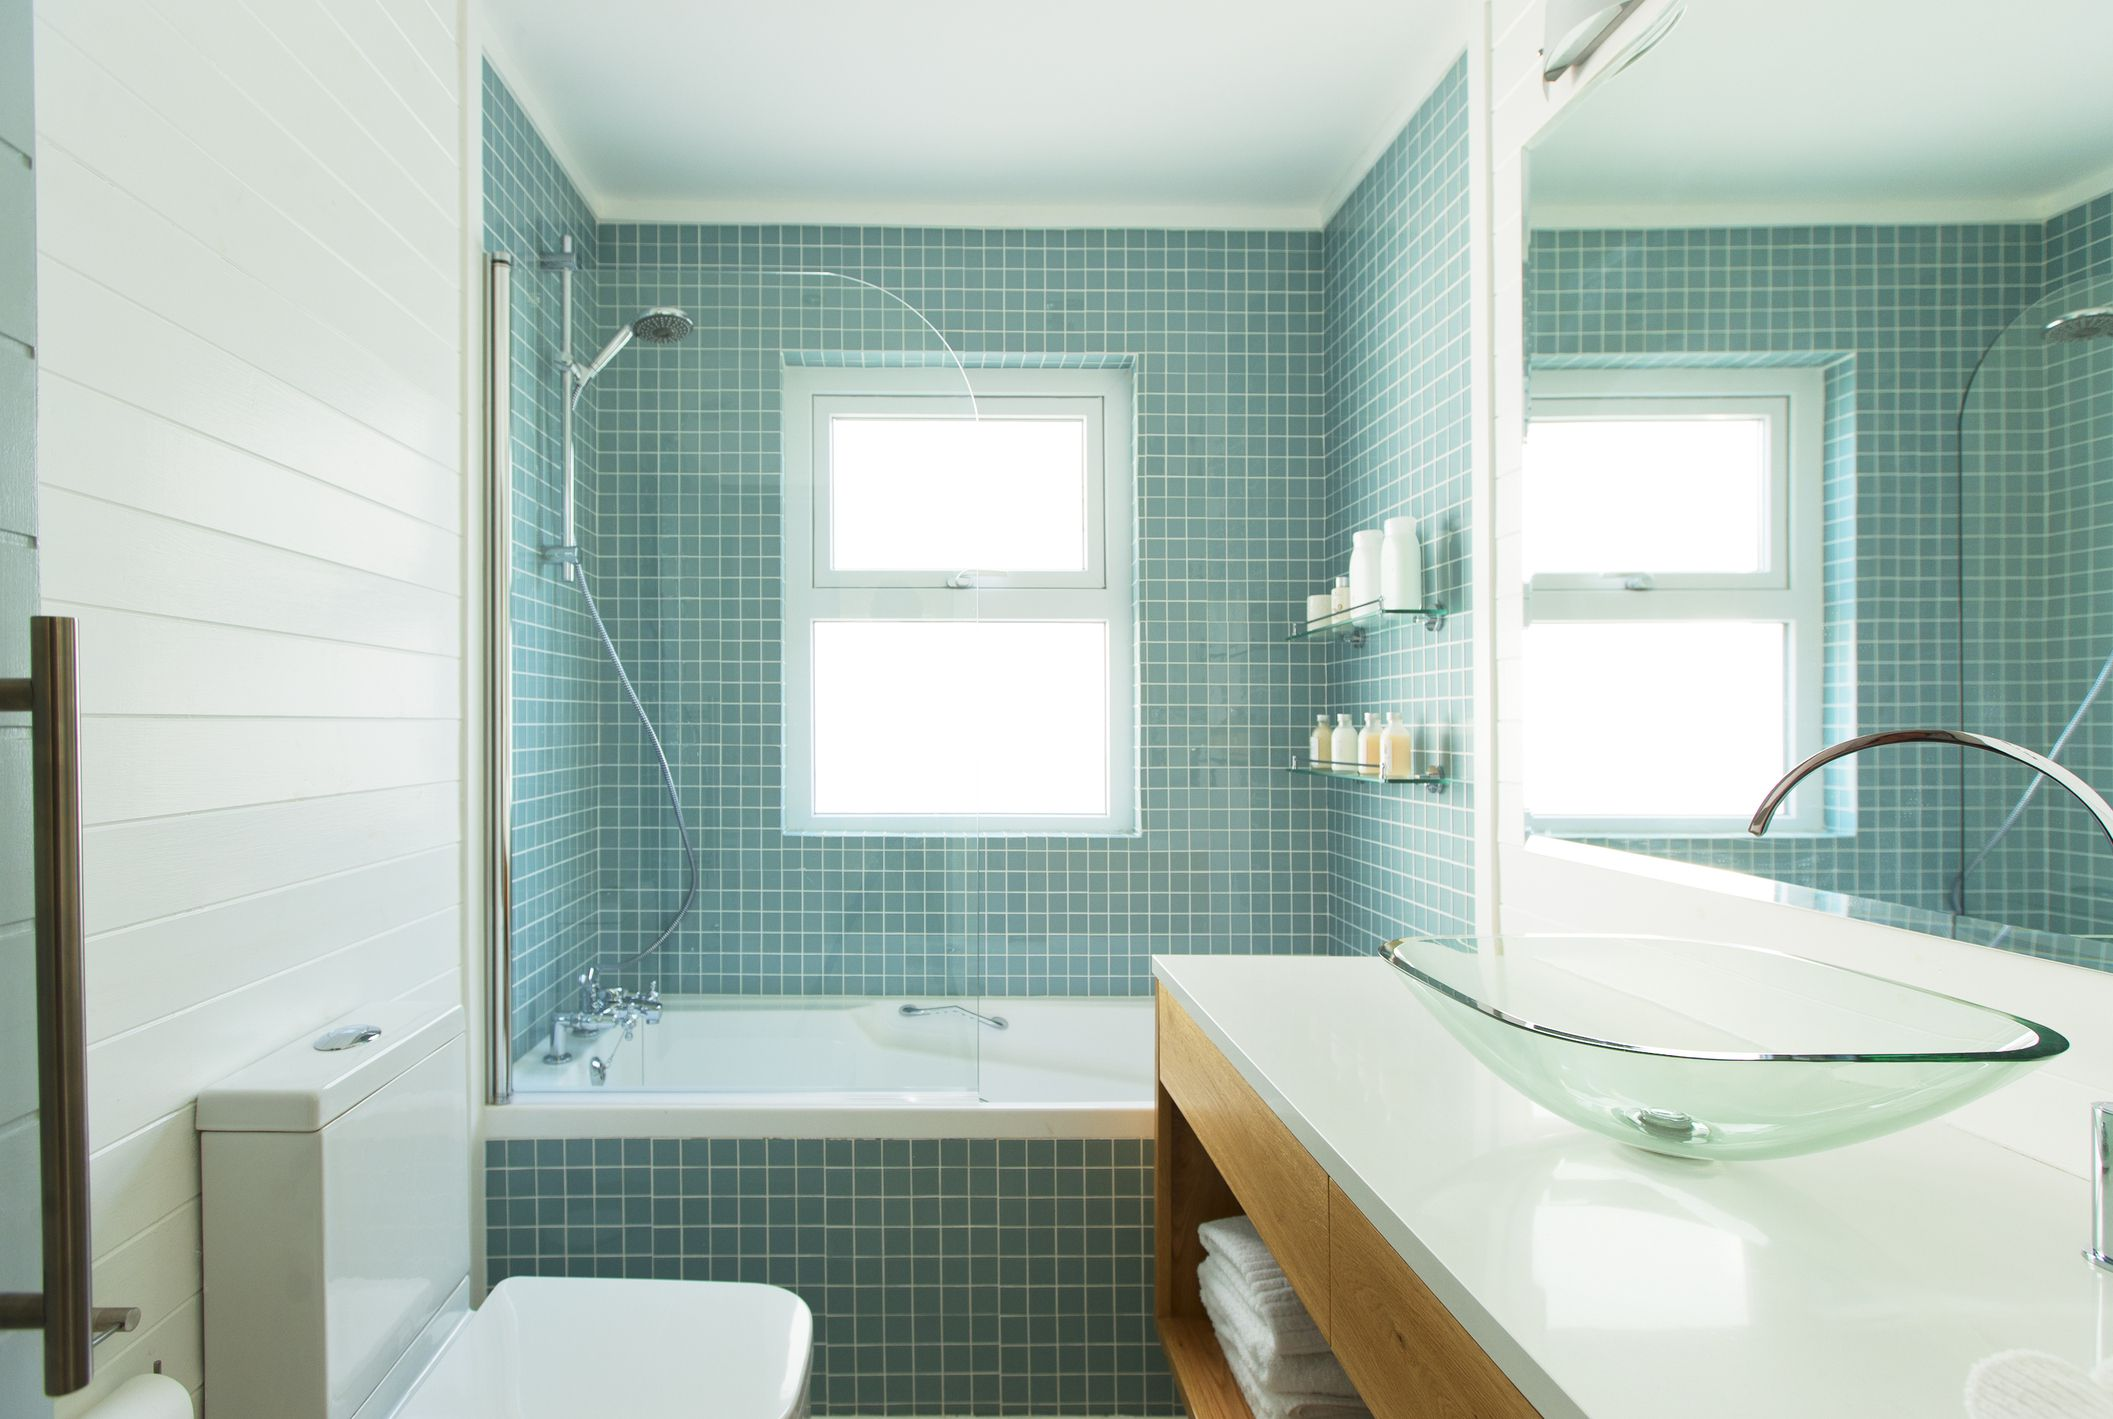 13 Tile Tips For Better Bathroom Tile: Important Tips For Tiling A Bathroom